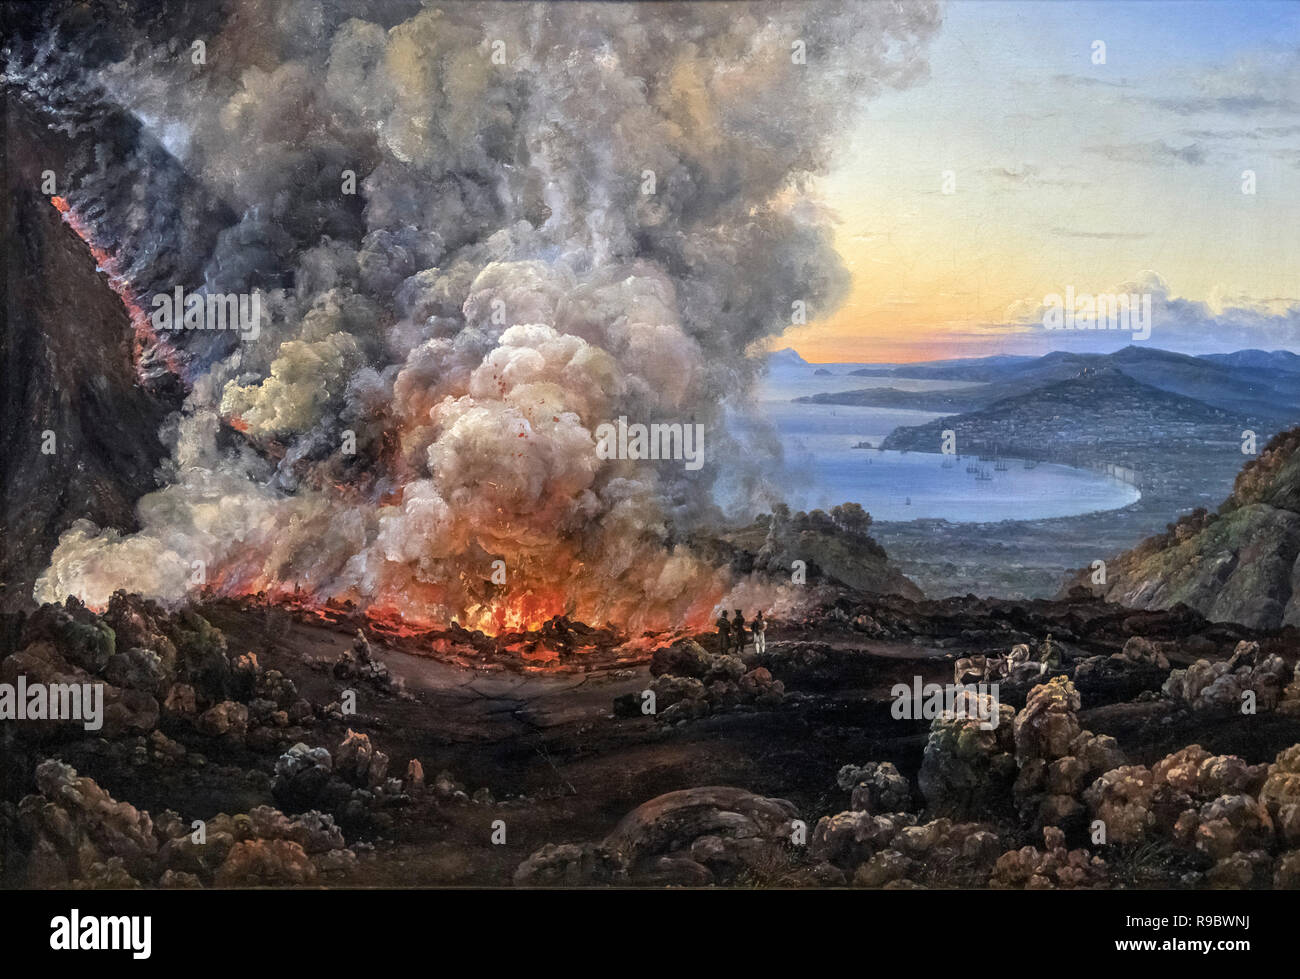 An Eruption of Vesuvius by J C Dahl (Johan Christian Claussen Dahl: 1788-1857), oil on canvas, 1821 - Stock Image